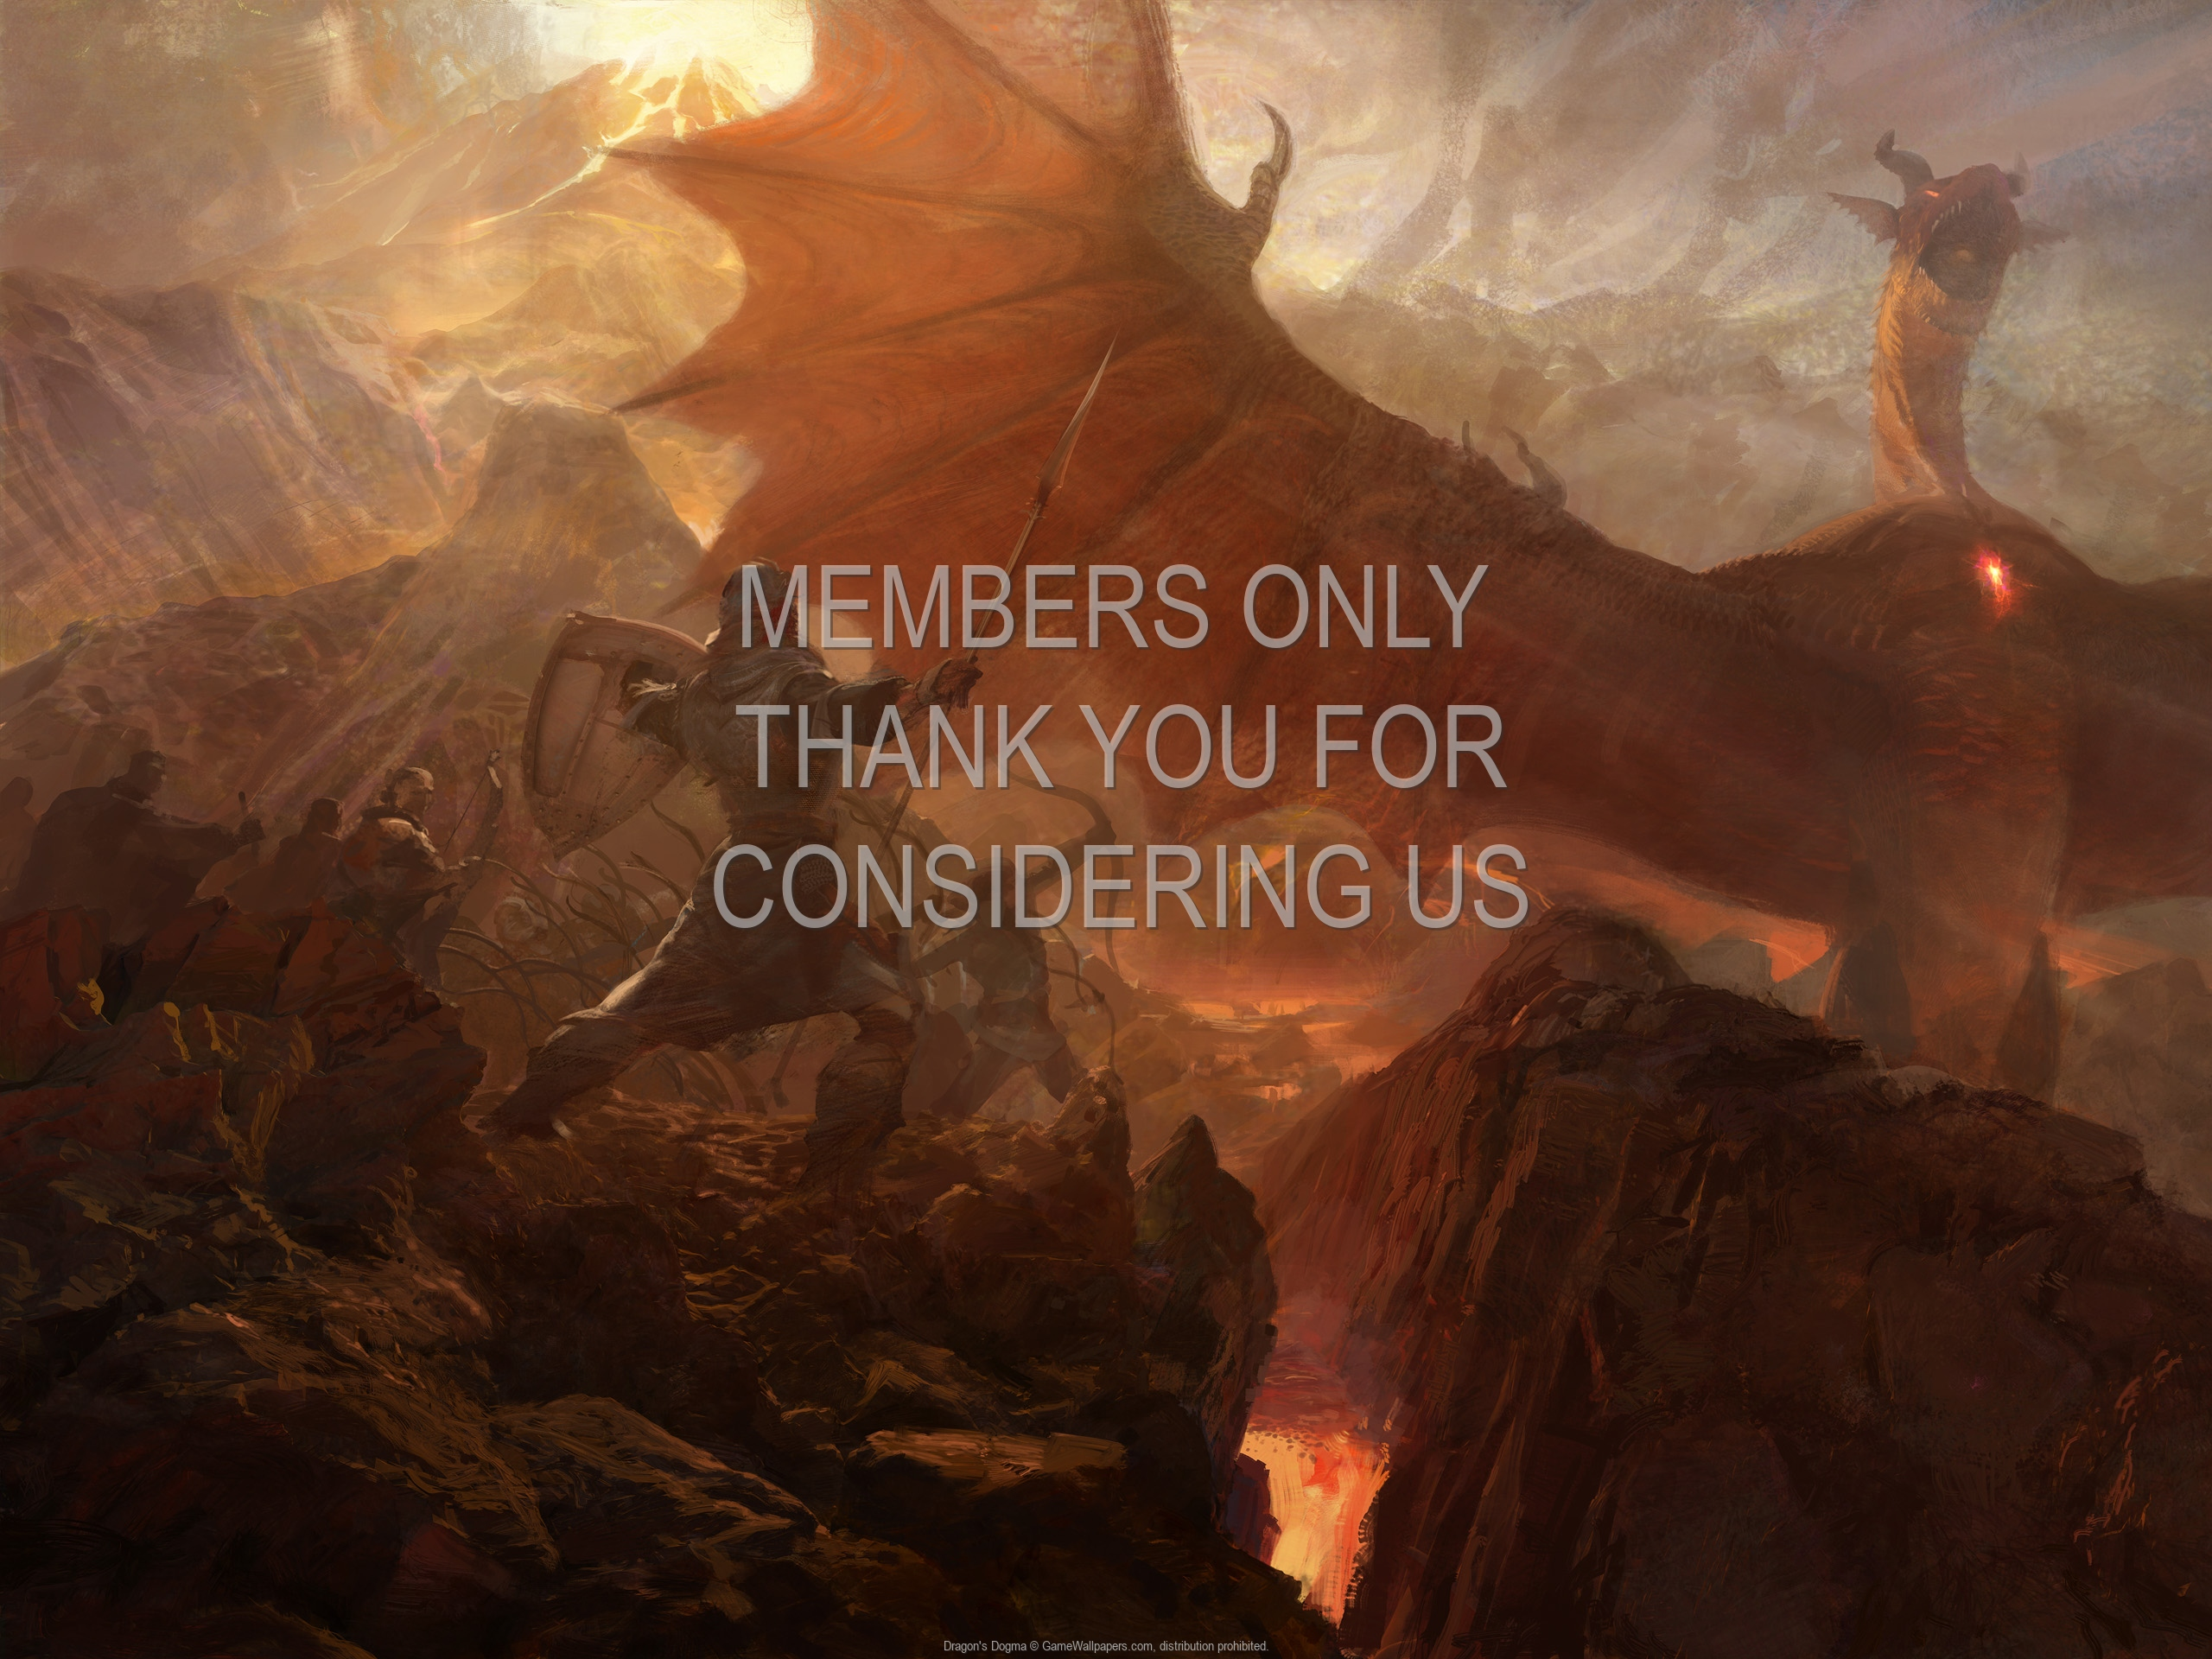 Dragons Dogma 1920x1080 Mobile Wallpaper Or Background 04